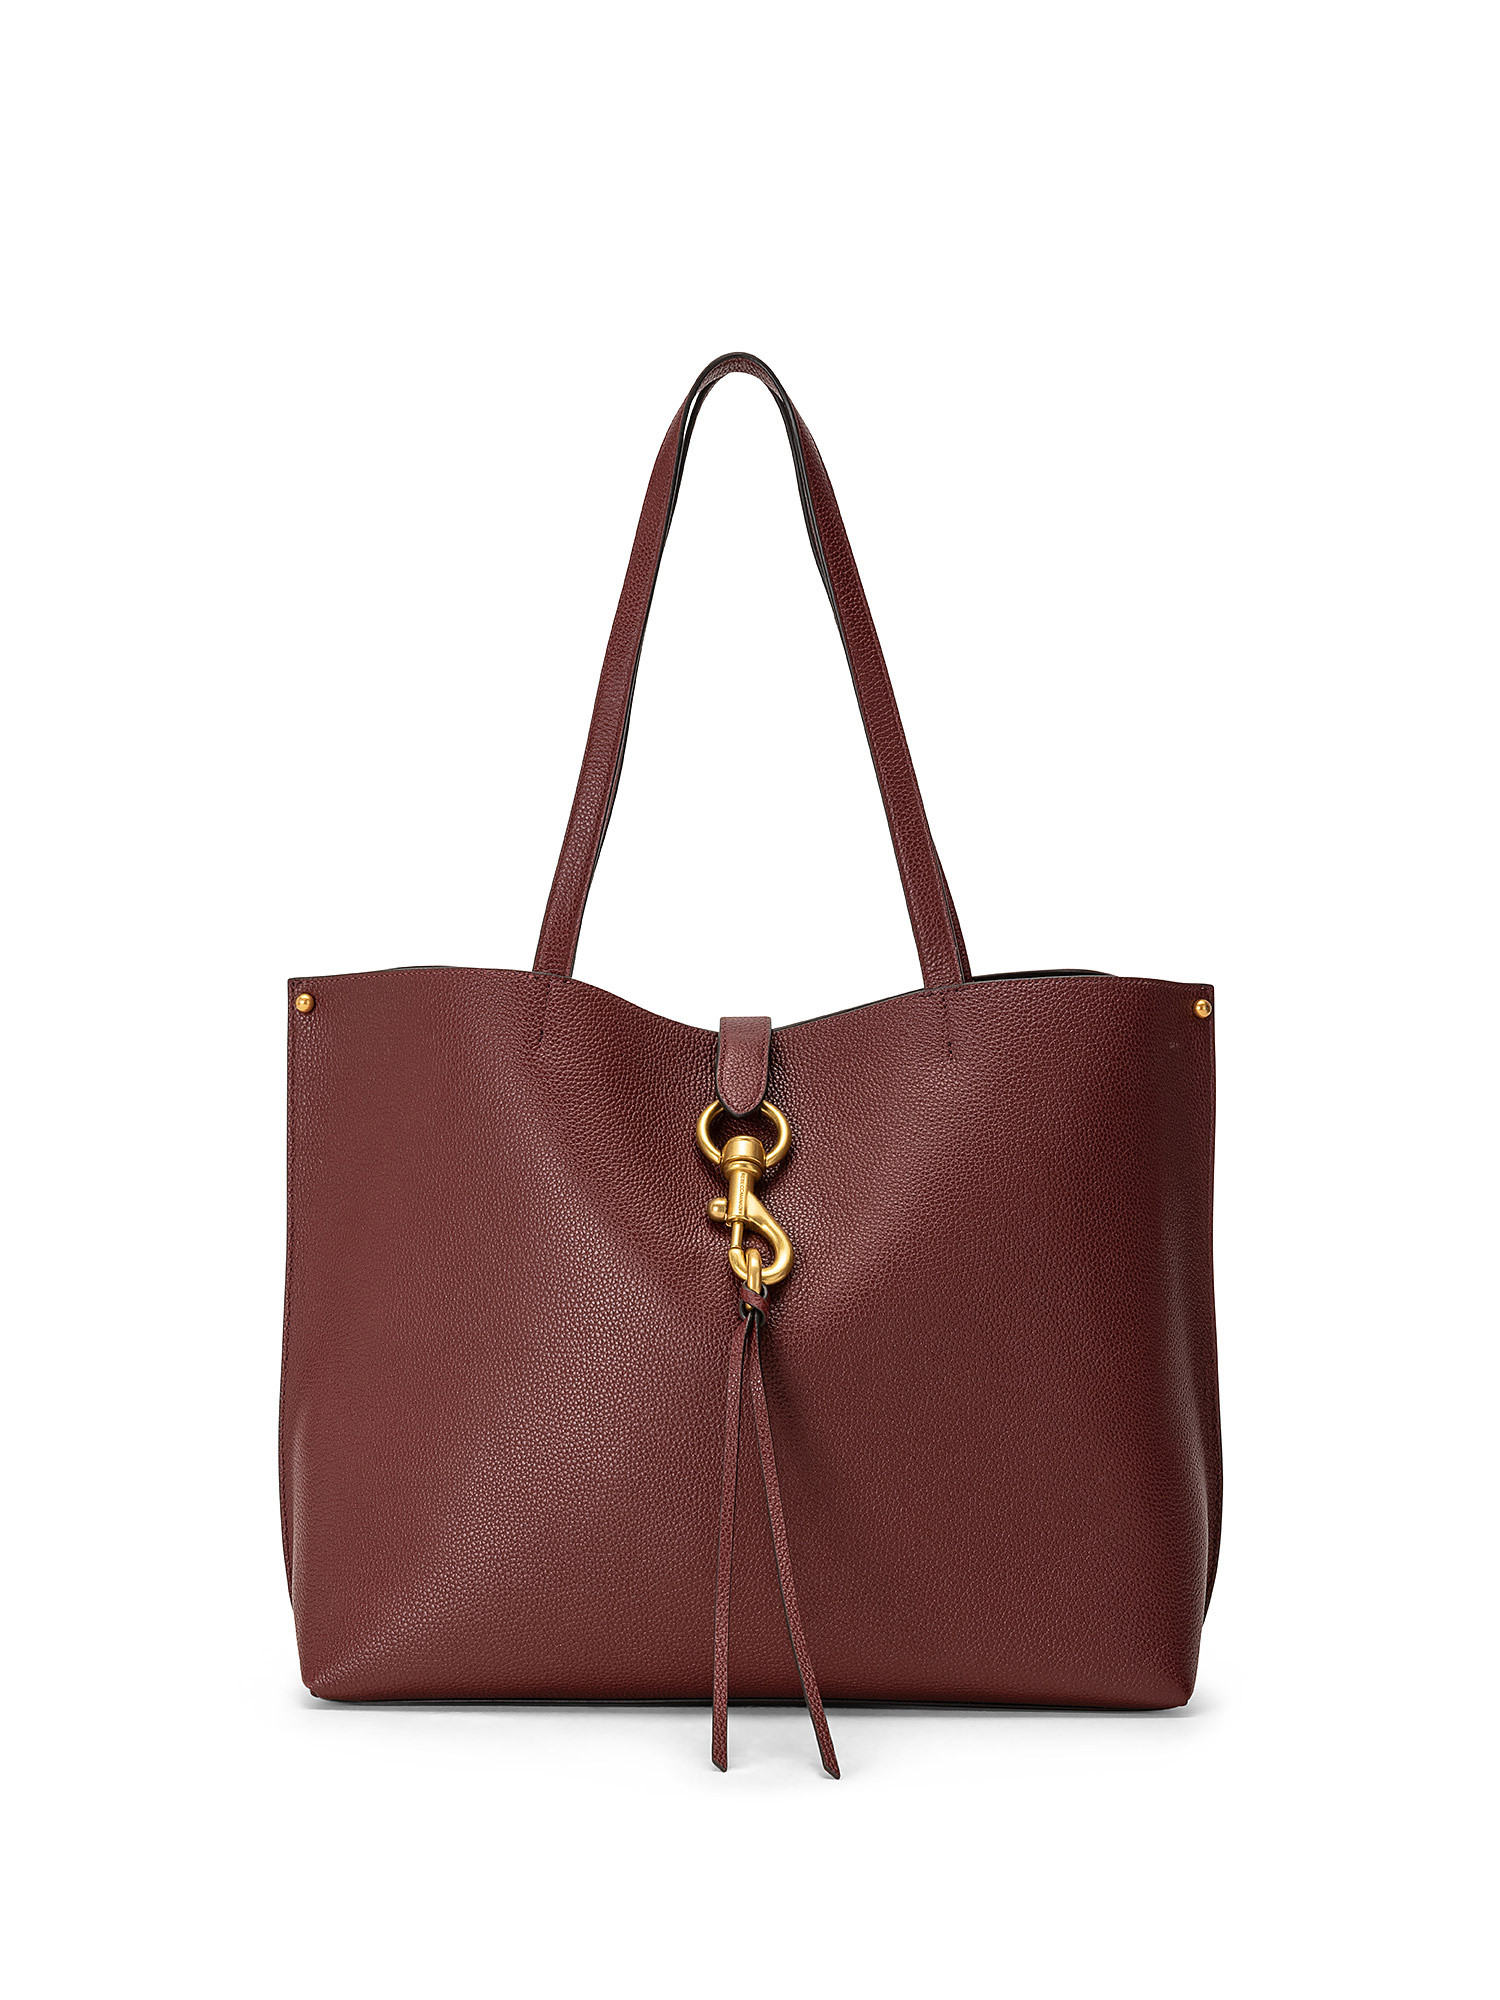 Megan Tote, Rosso ciliegia, large image number 0